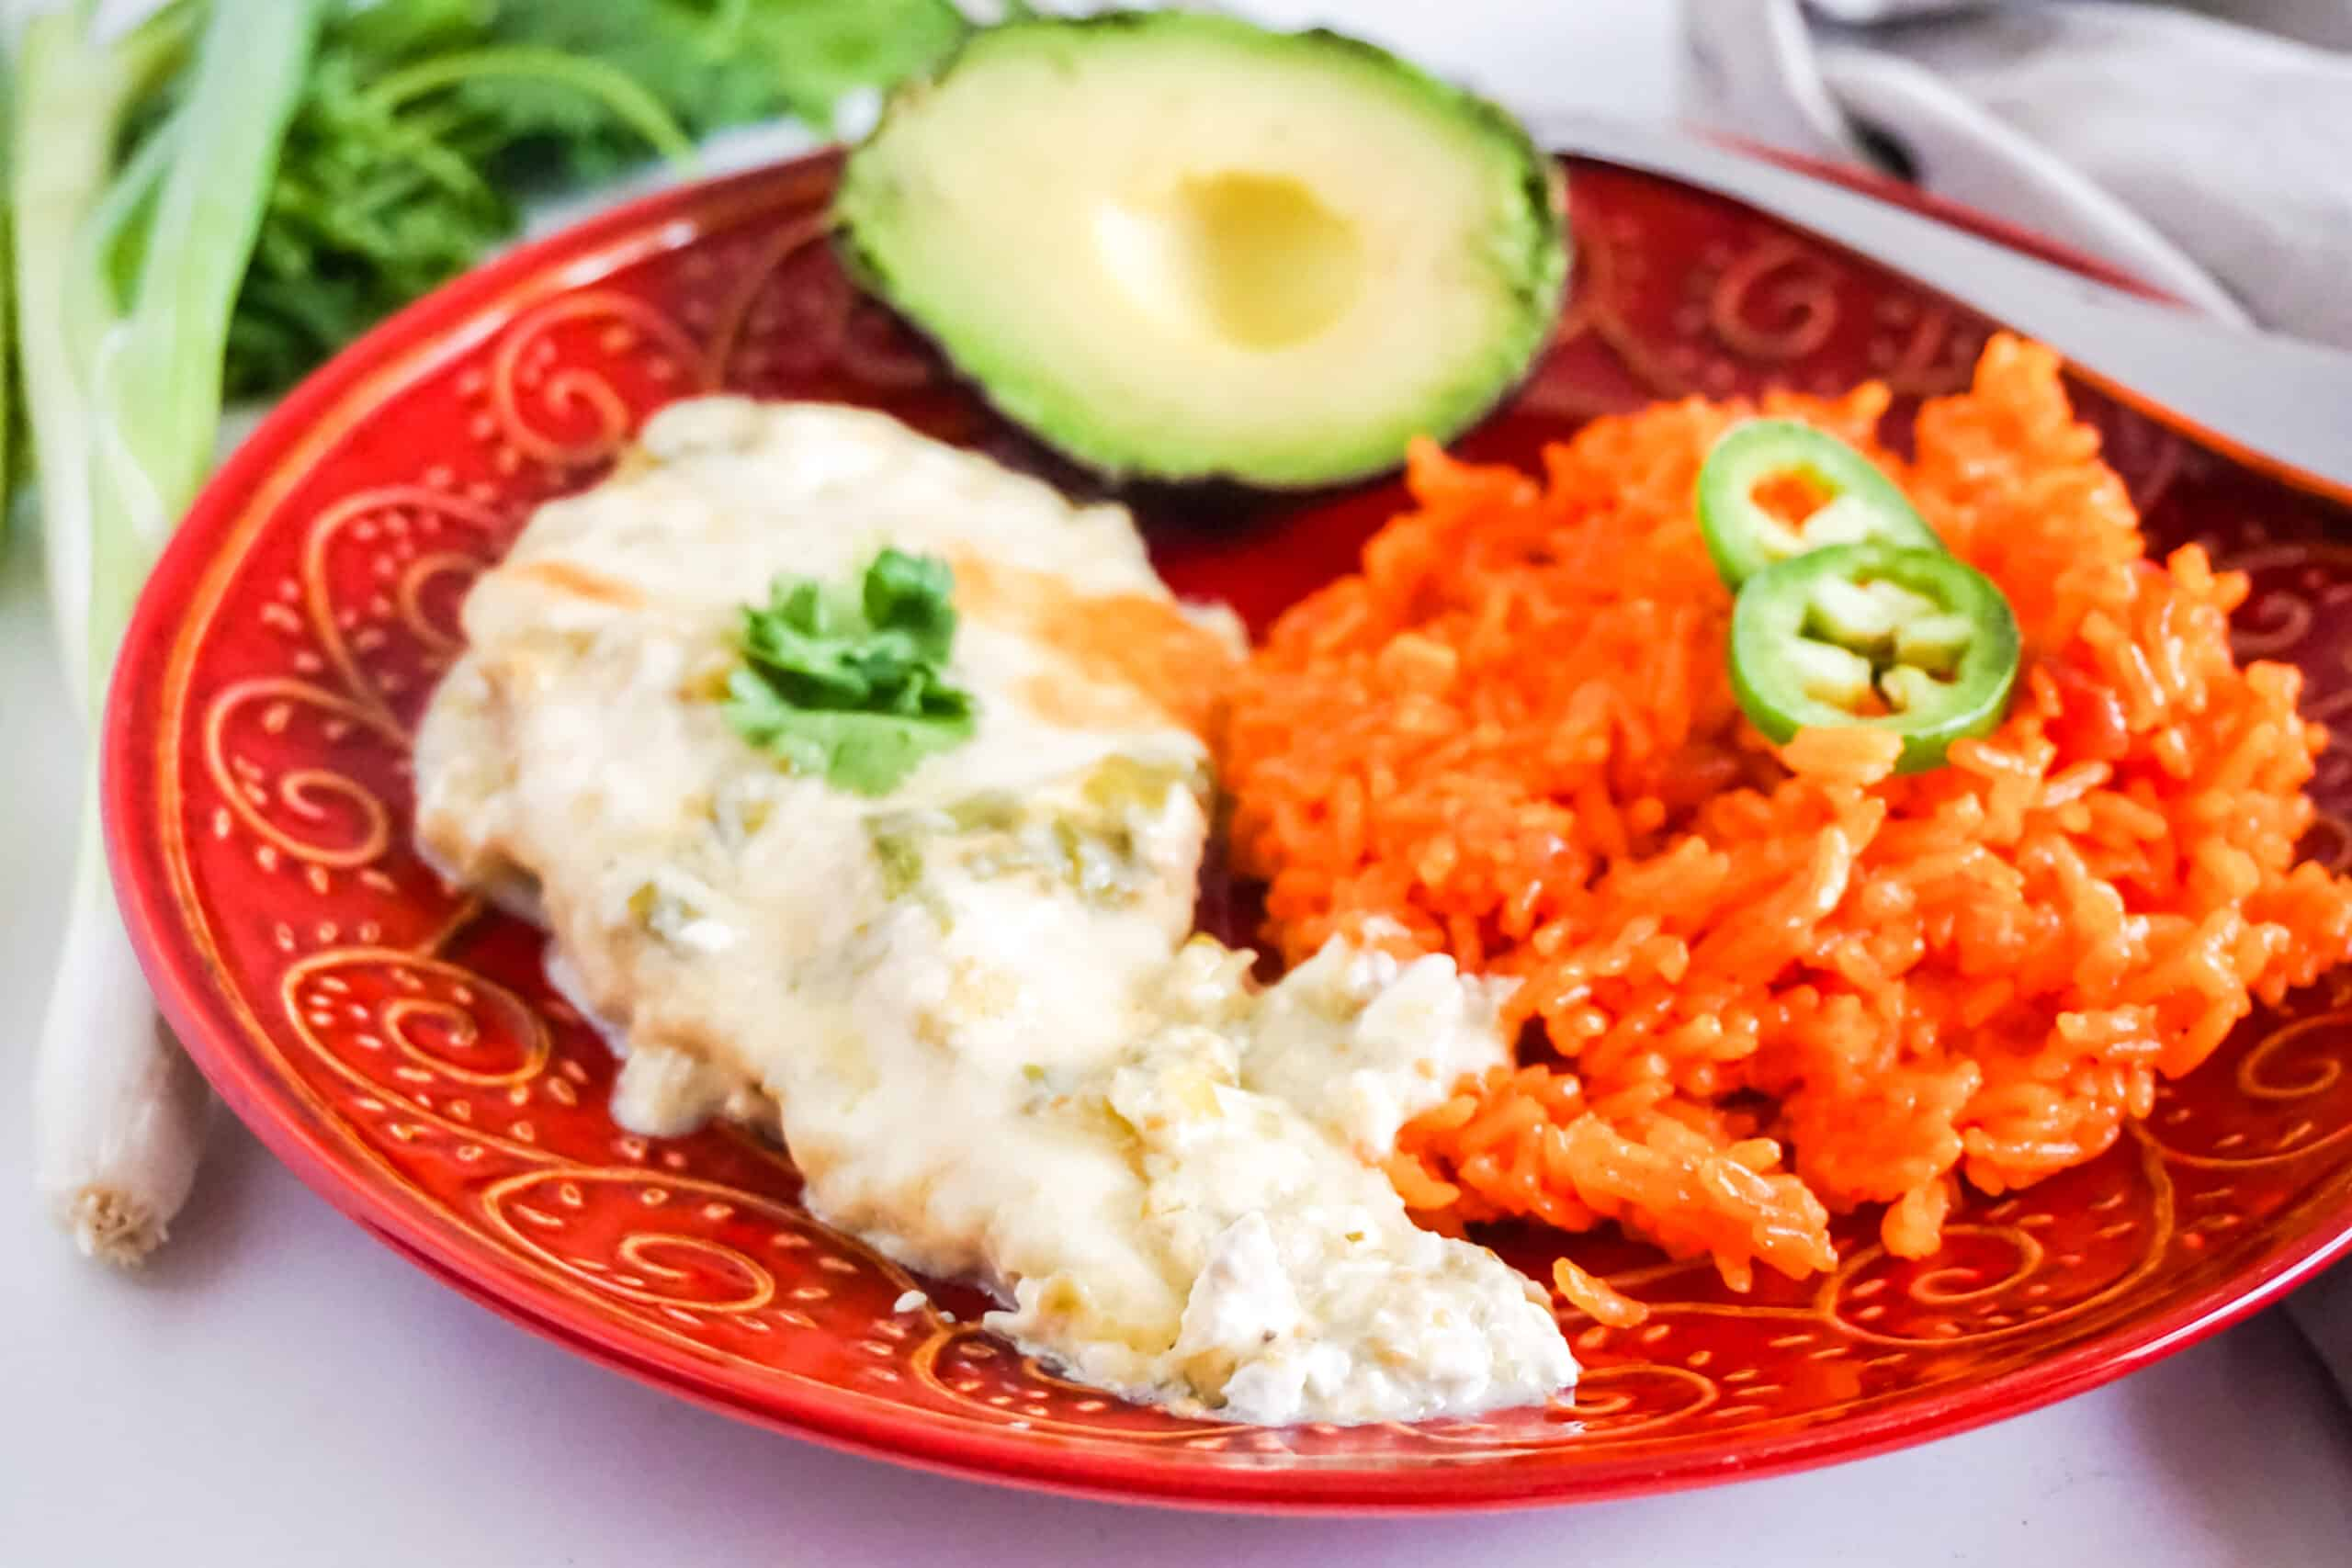 Chicken Chile Verde next to rice and an avocado on a red plate